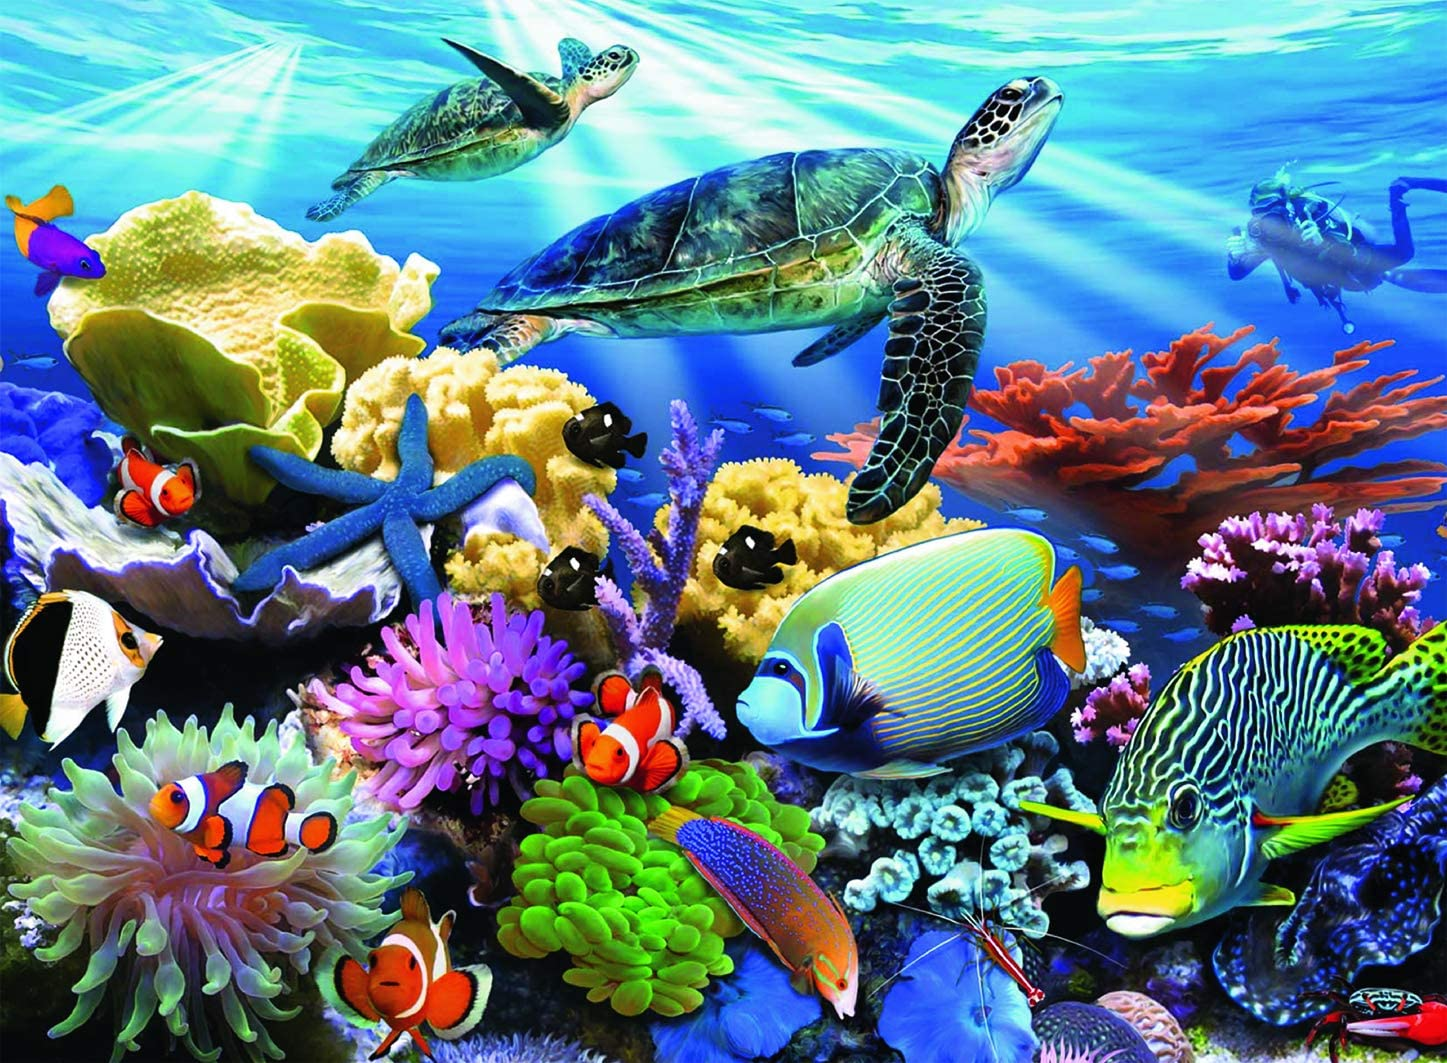 Ravensburger Ocean Turtles - 200 Piece Jigsaw Puzzle for Kids – Every Piece is Unique, Pieces Fit Together Perfectly : Everything Else